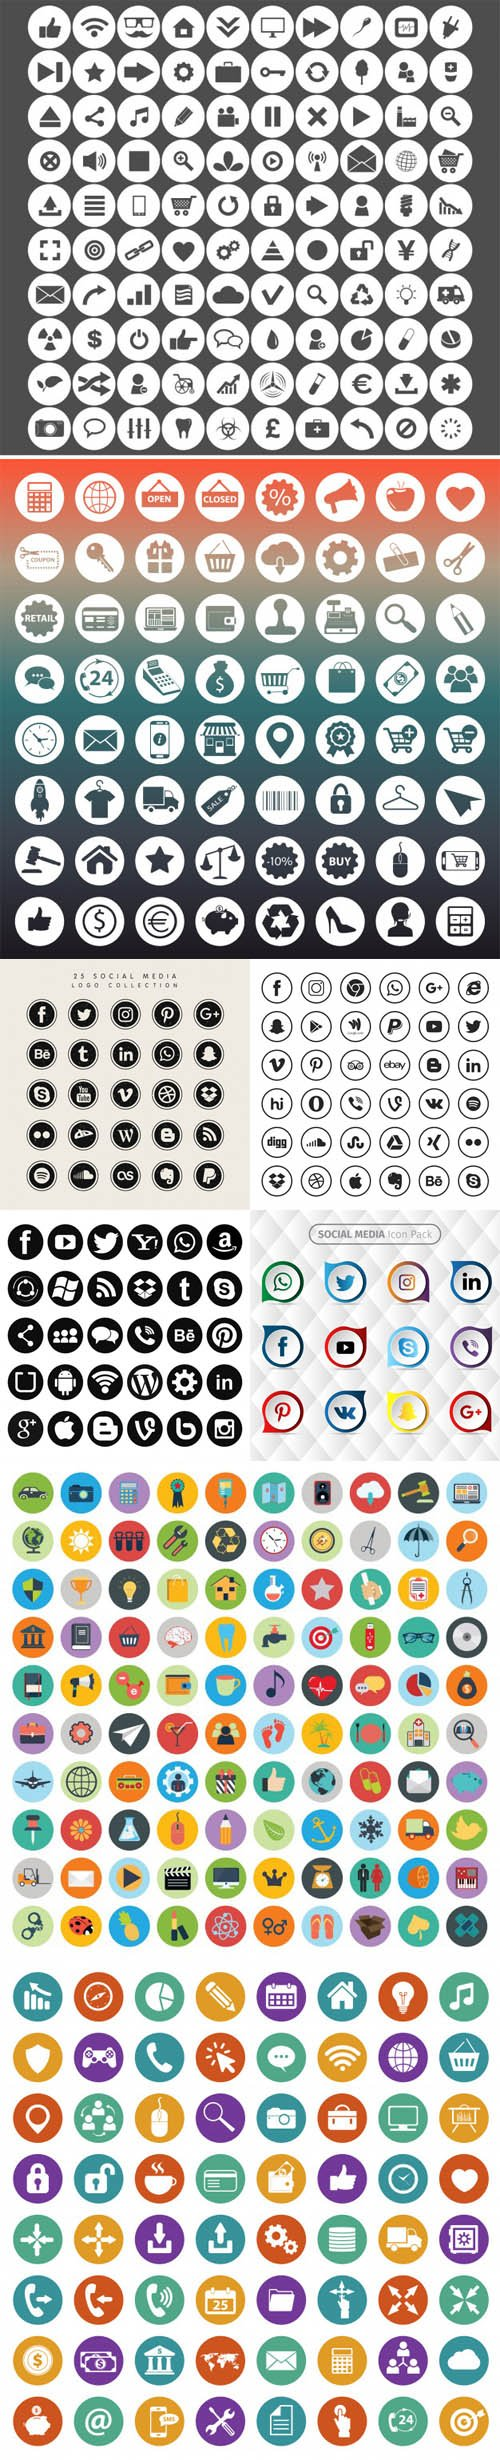 400+ Collection of Icons in Vector